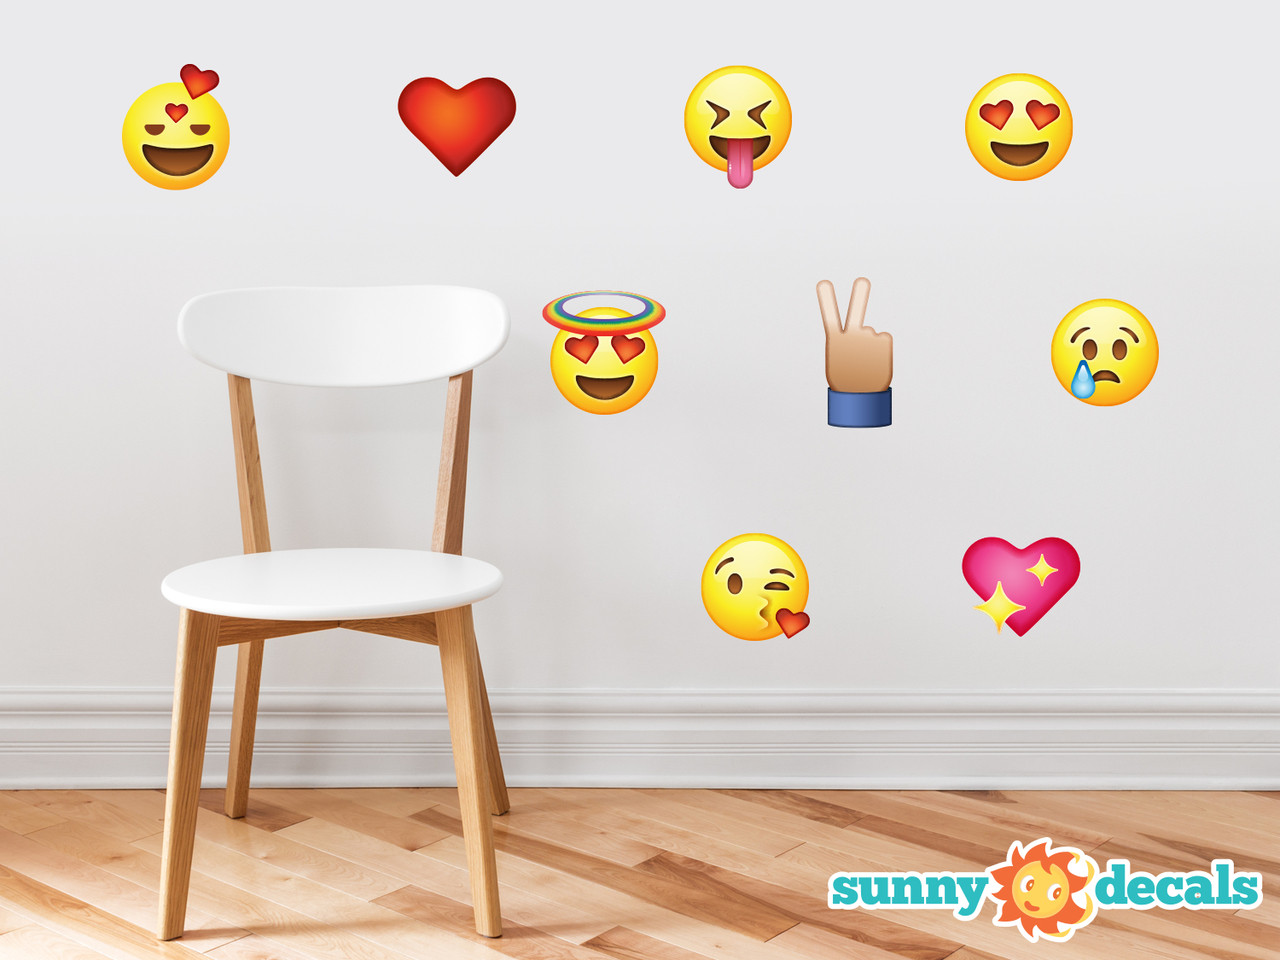 6dad9fbd31 Emoji Emoticon Fabric Wall Decals - Set of 9 Phone Text Faces Wall Stickers  - Sunny. Loading zoom. Emoji Emoticon Fabric Wall Decals ...